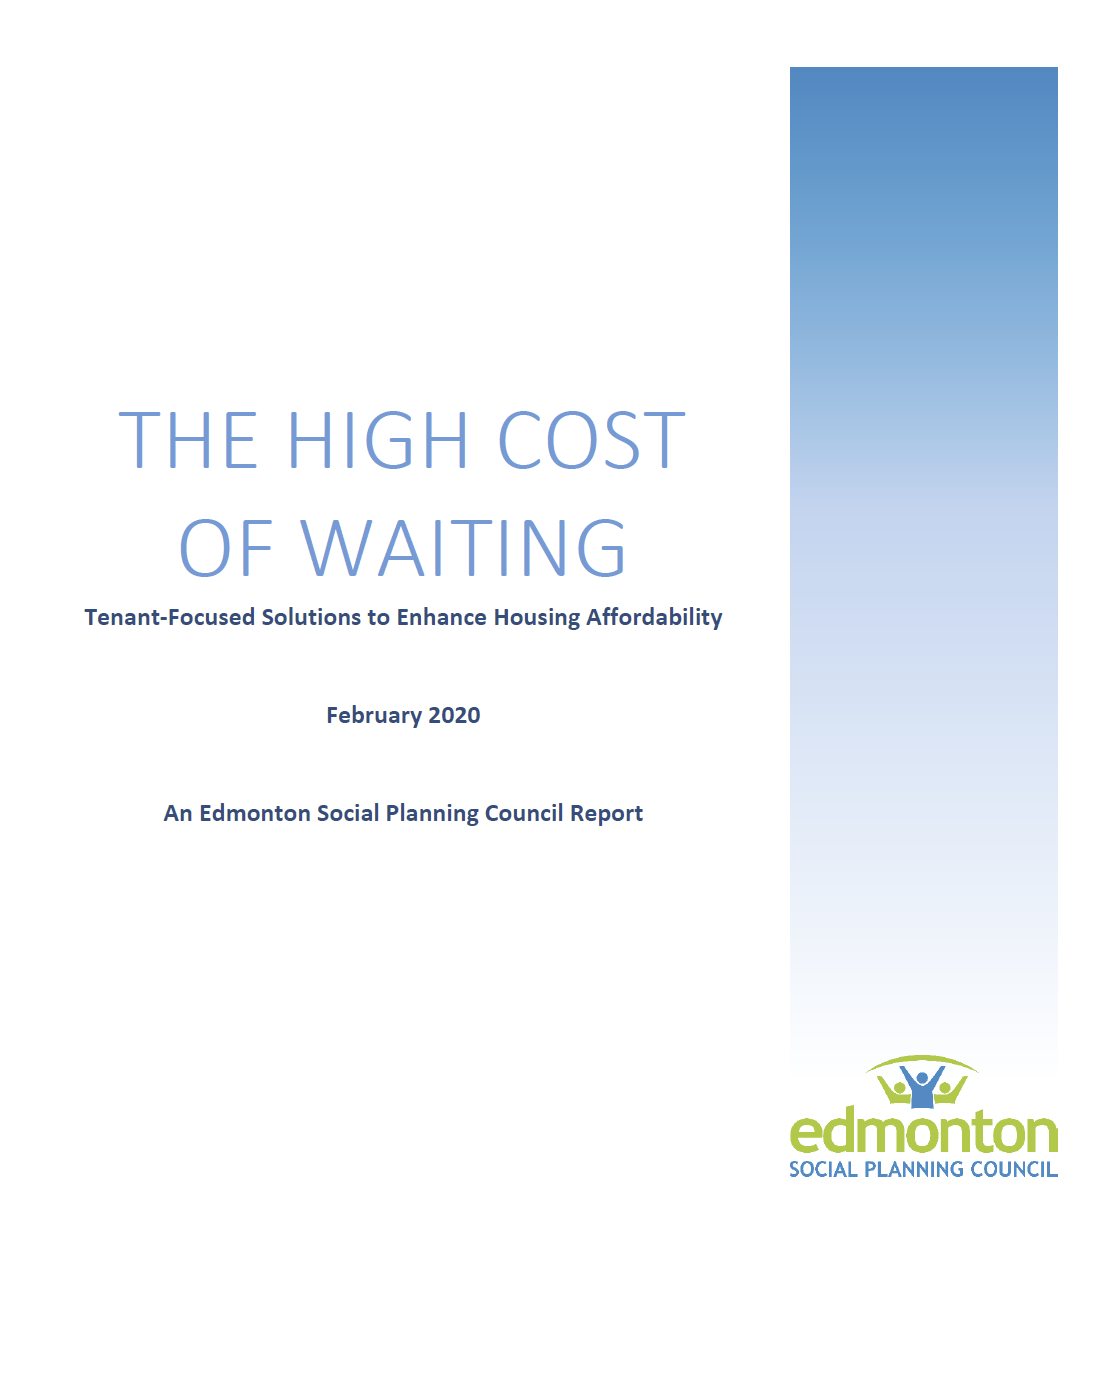 THE HIGH COST OF WAITING - Tenant-Focused Solutions to Enhance Housing Affordability